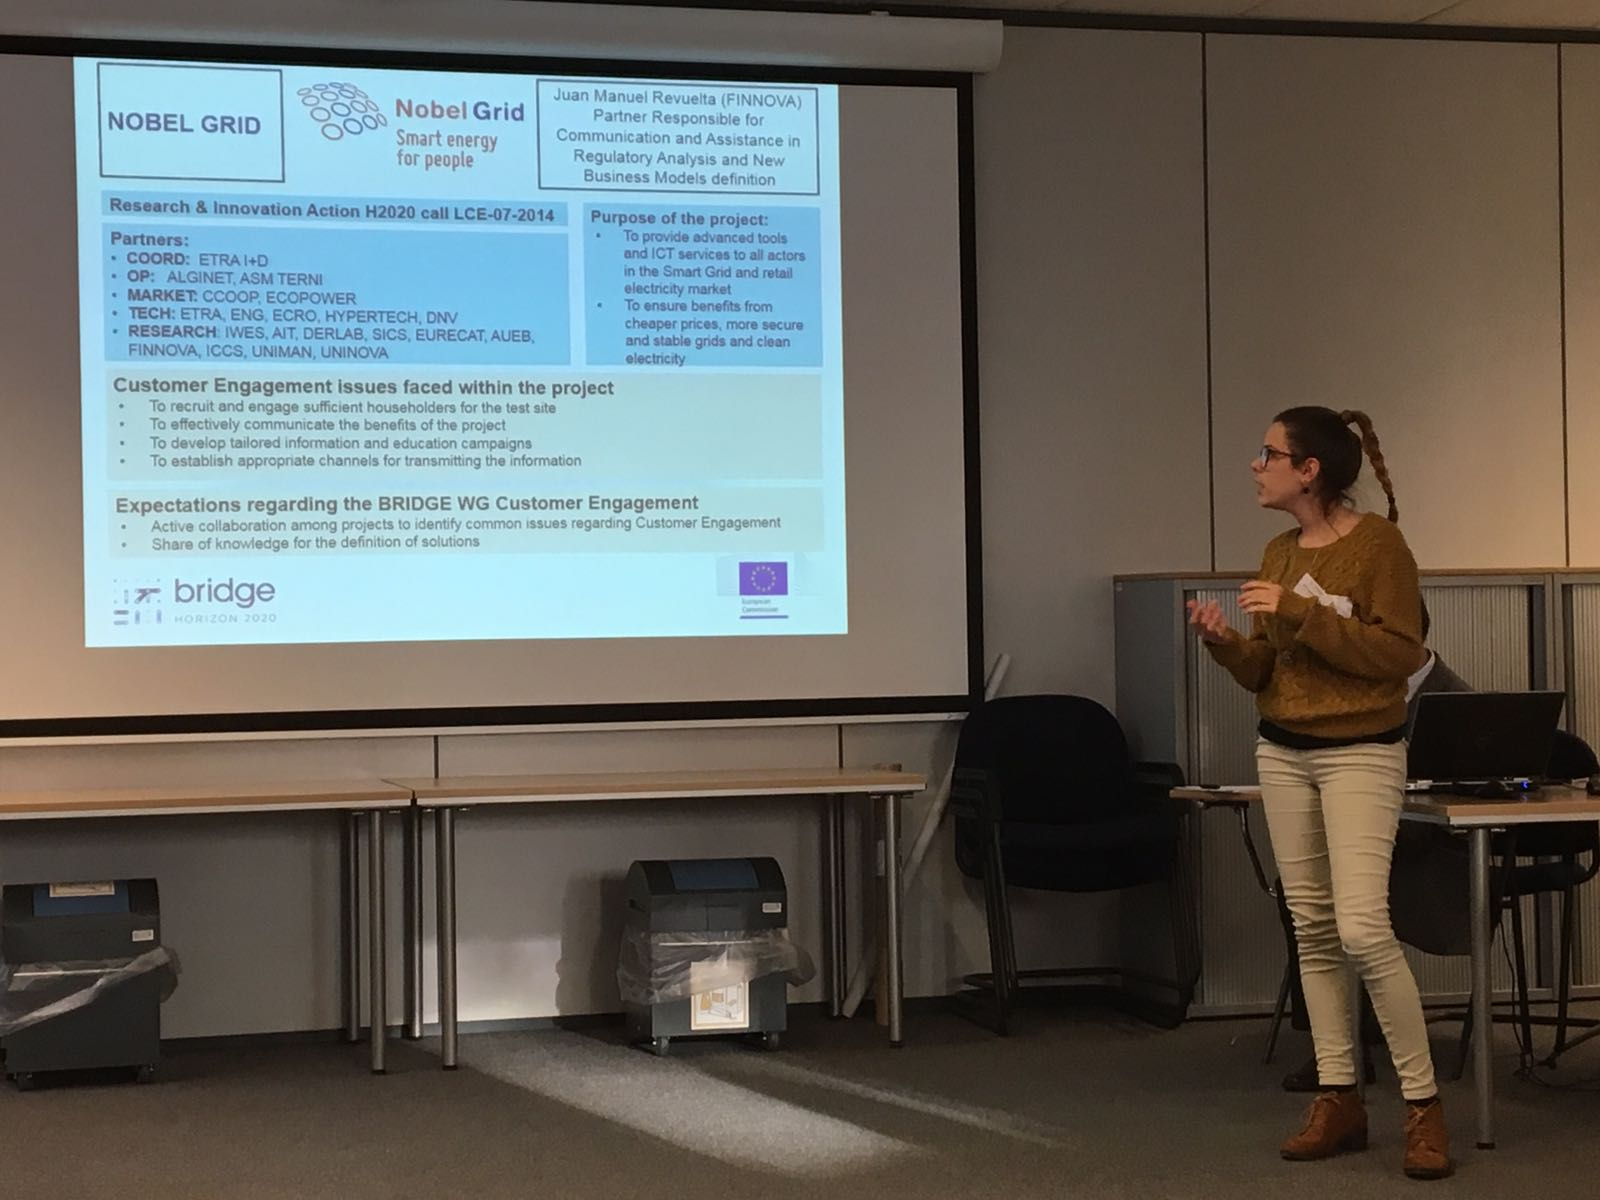 Our colleague @AnaNavaTazo from @Finnovaregio presented Nobel Grid in the Customer Engagement WG in DG ENER #BRIDGE_EU @EU_Commission https://t.co/p6YY7U5pmr